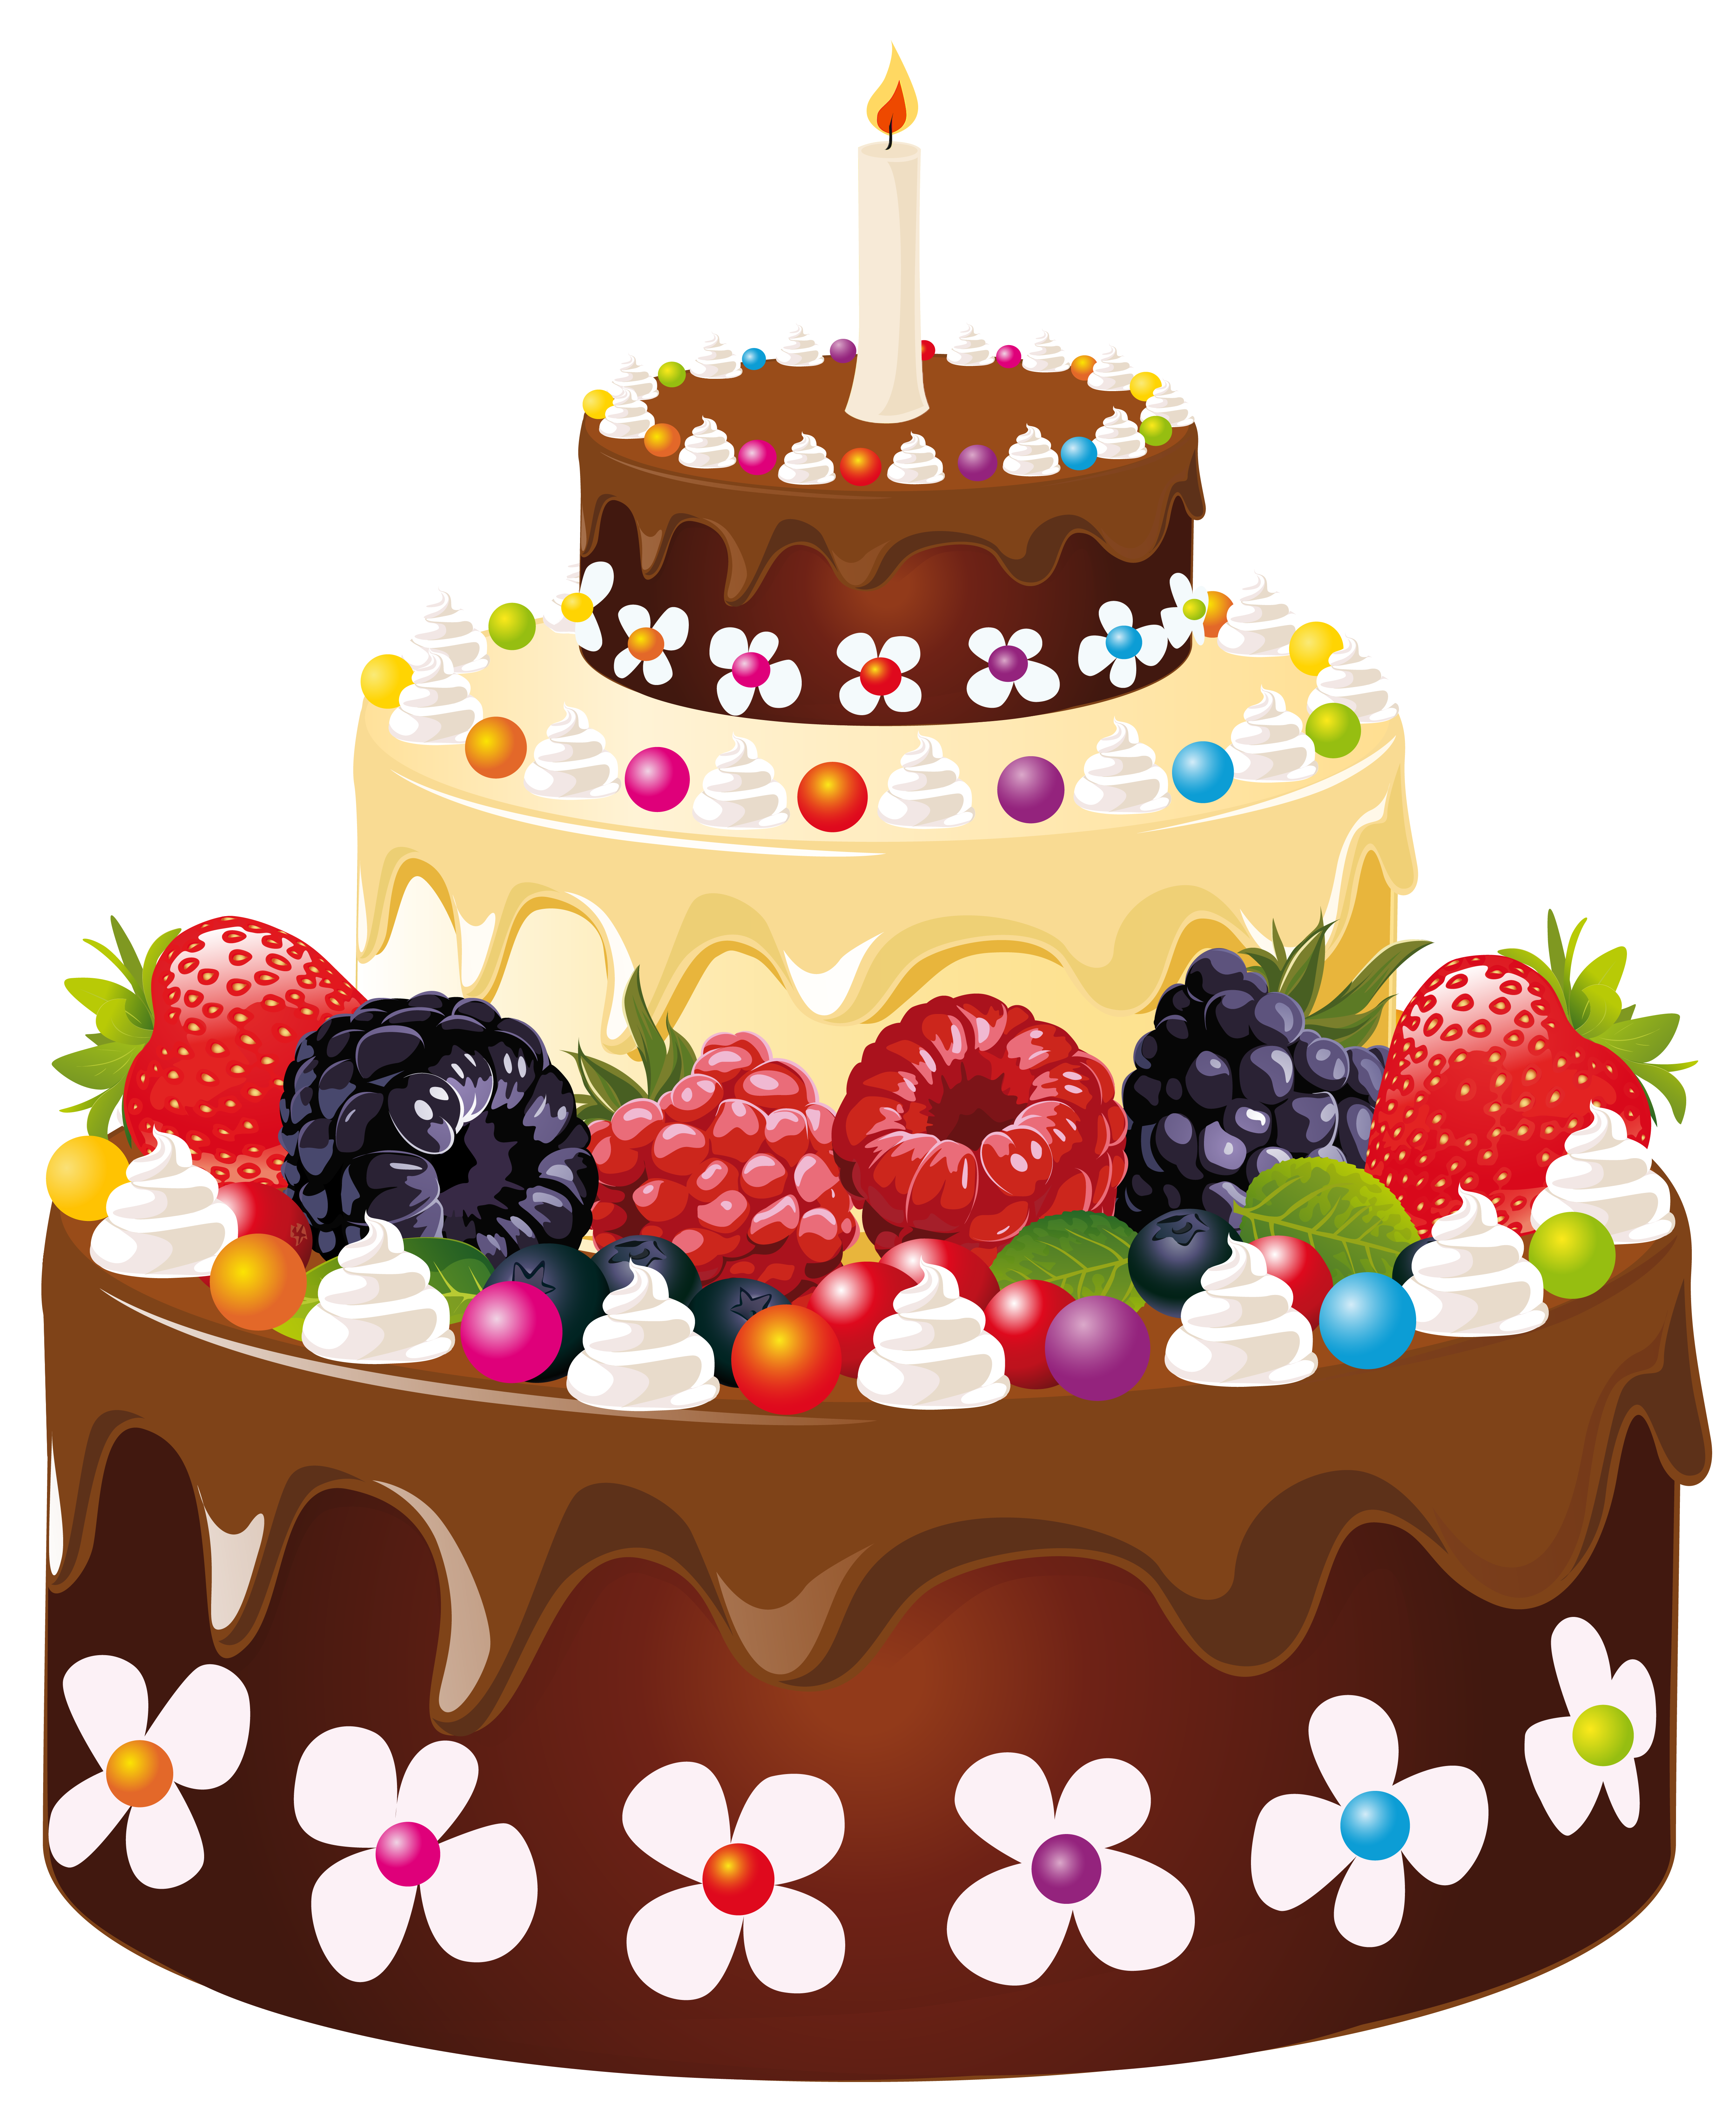 With candle png image. Candles clipart birthday cake